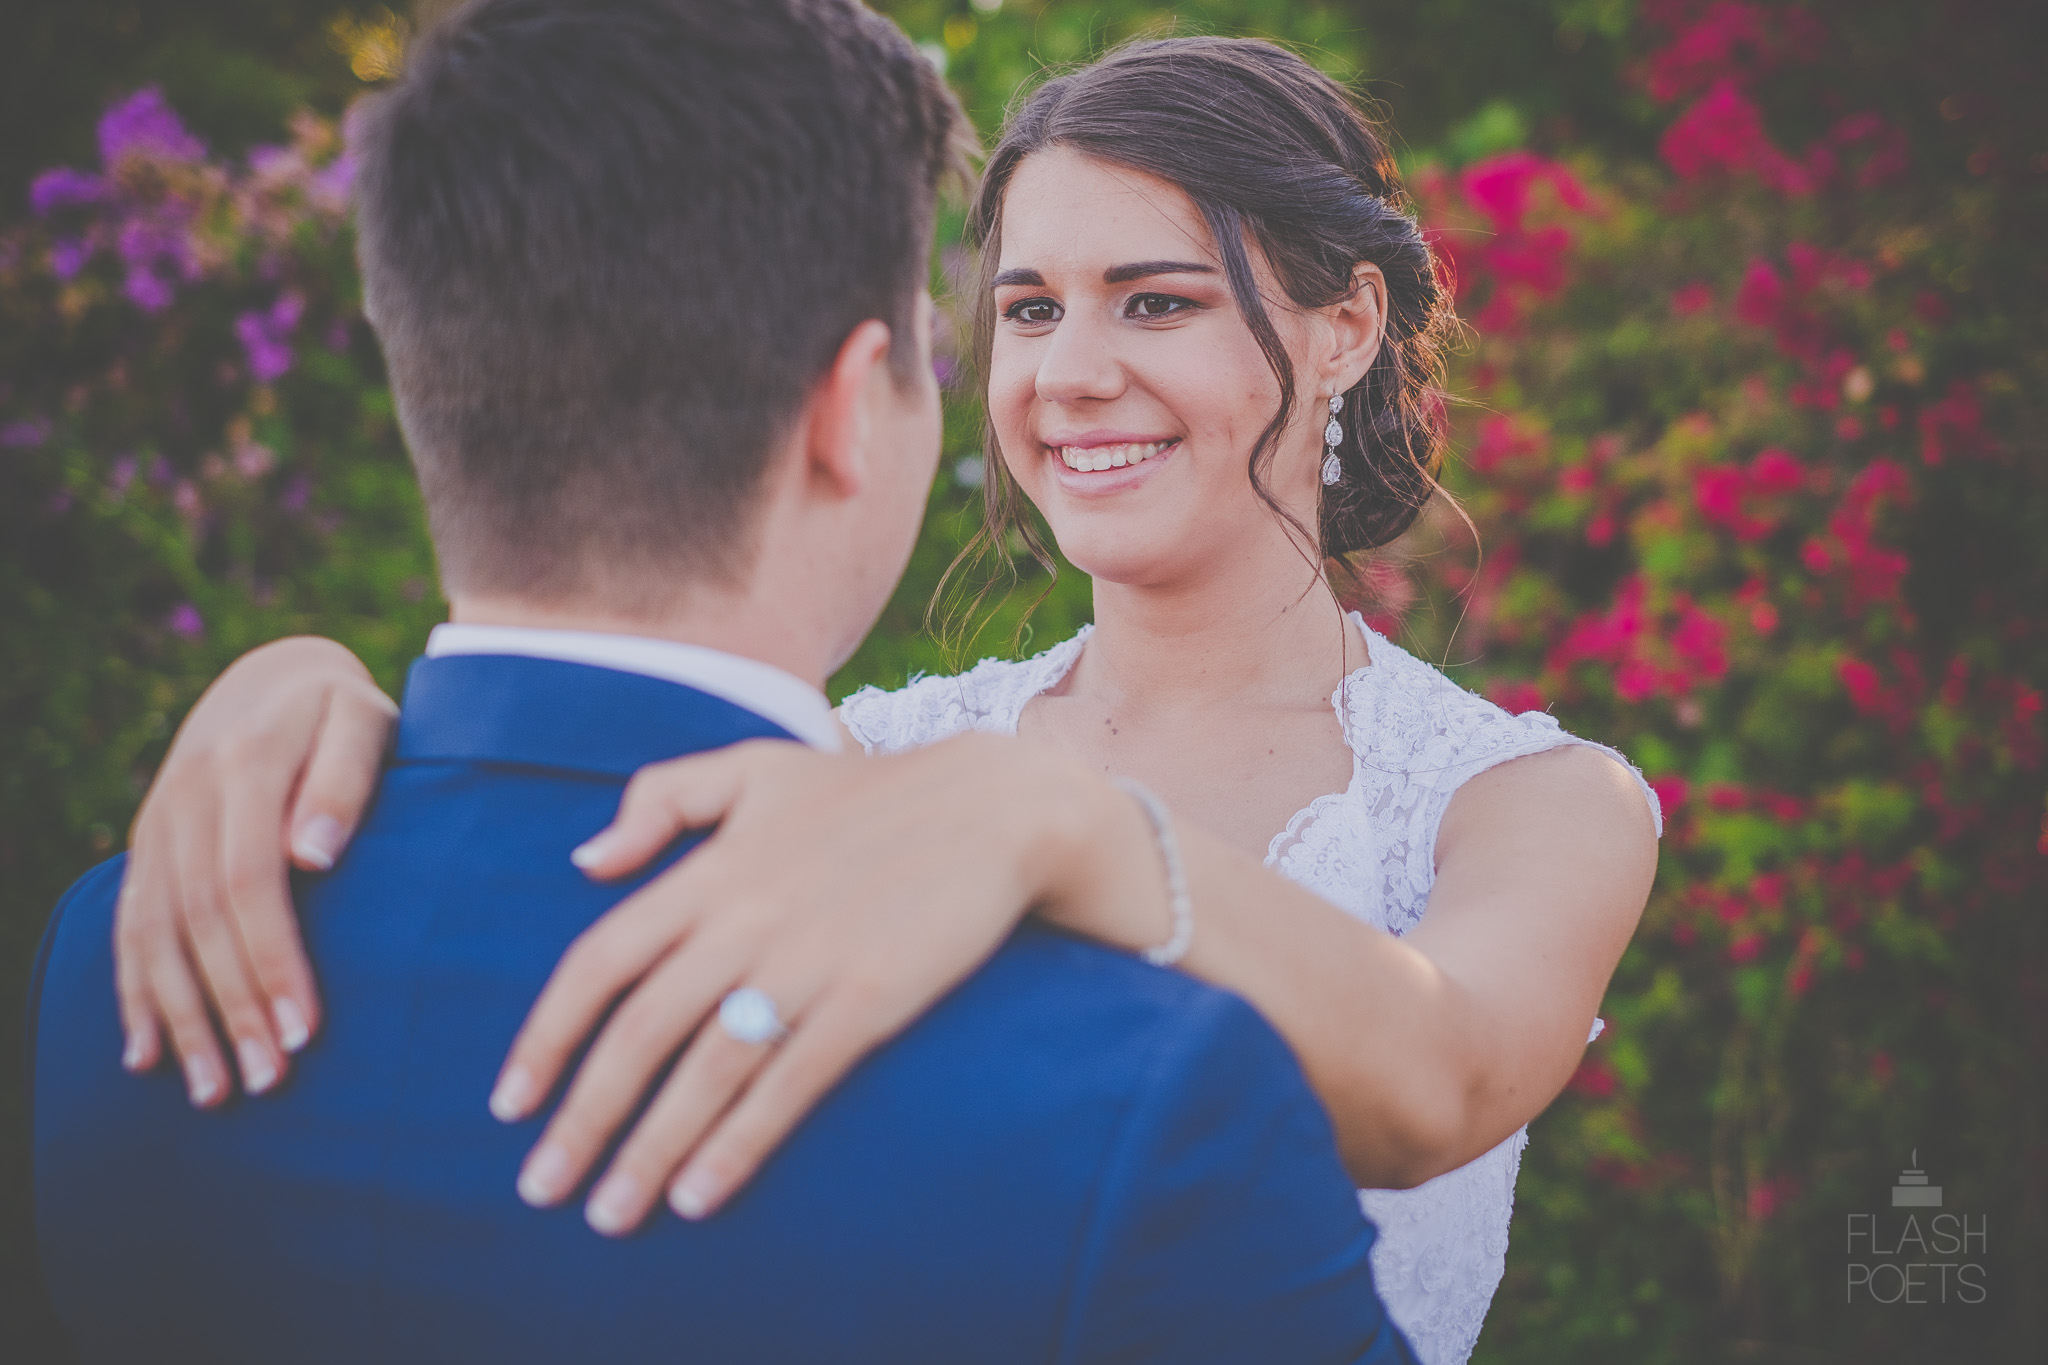 Wedding flash photography techniques How To Photograph A Wedding - DIY Photography